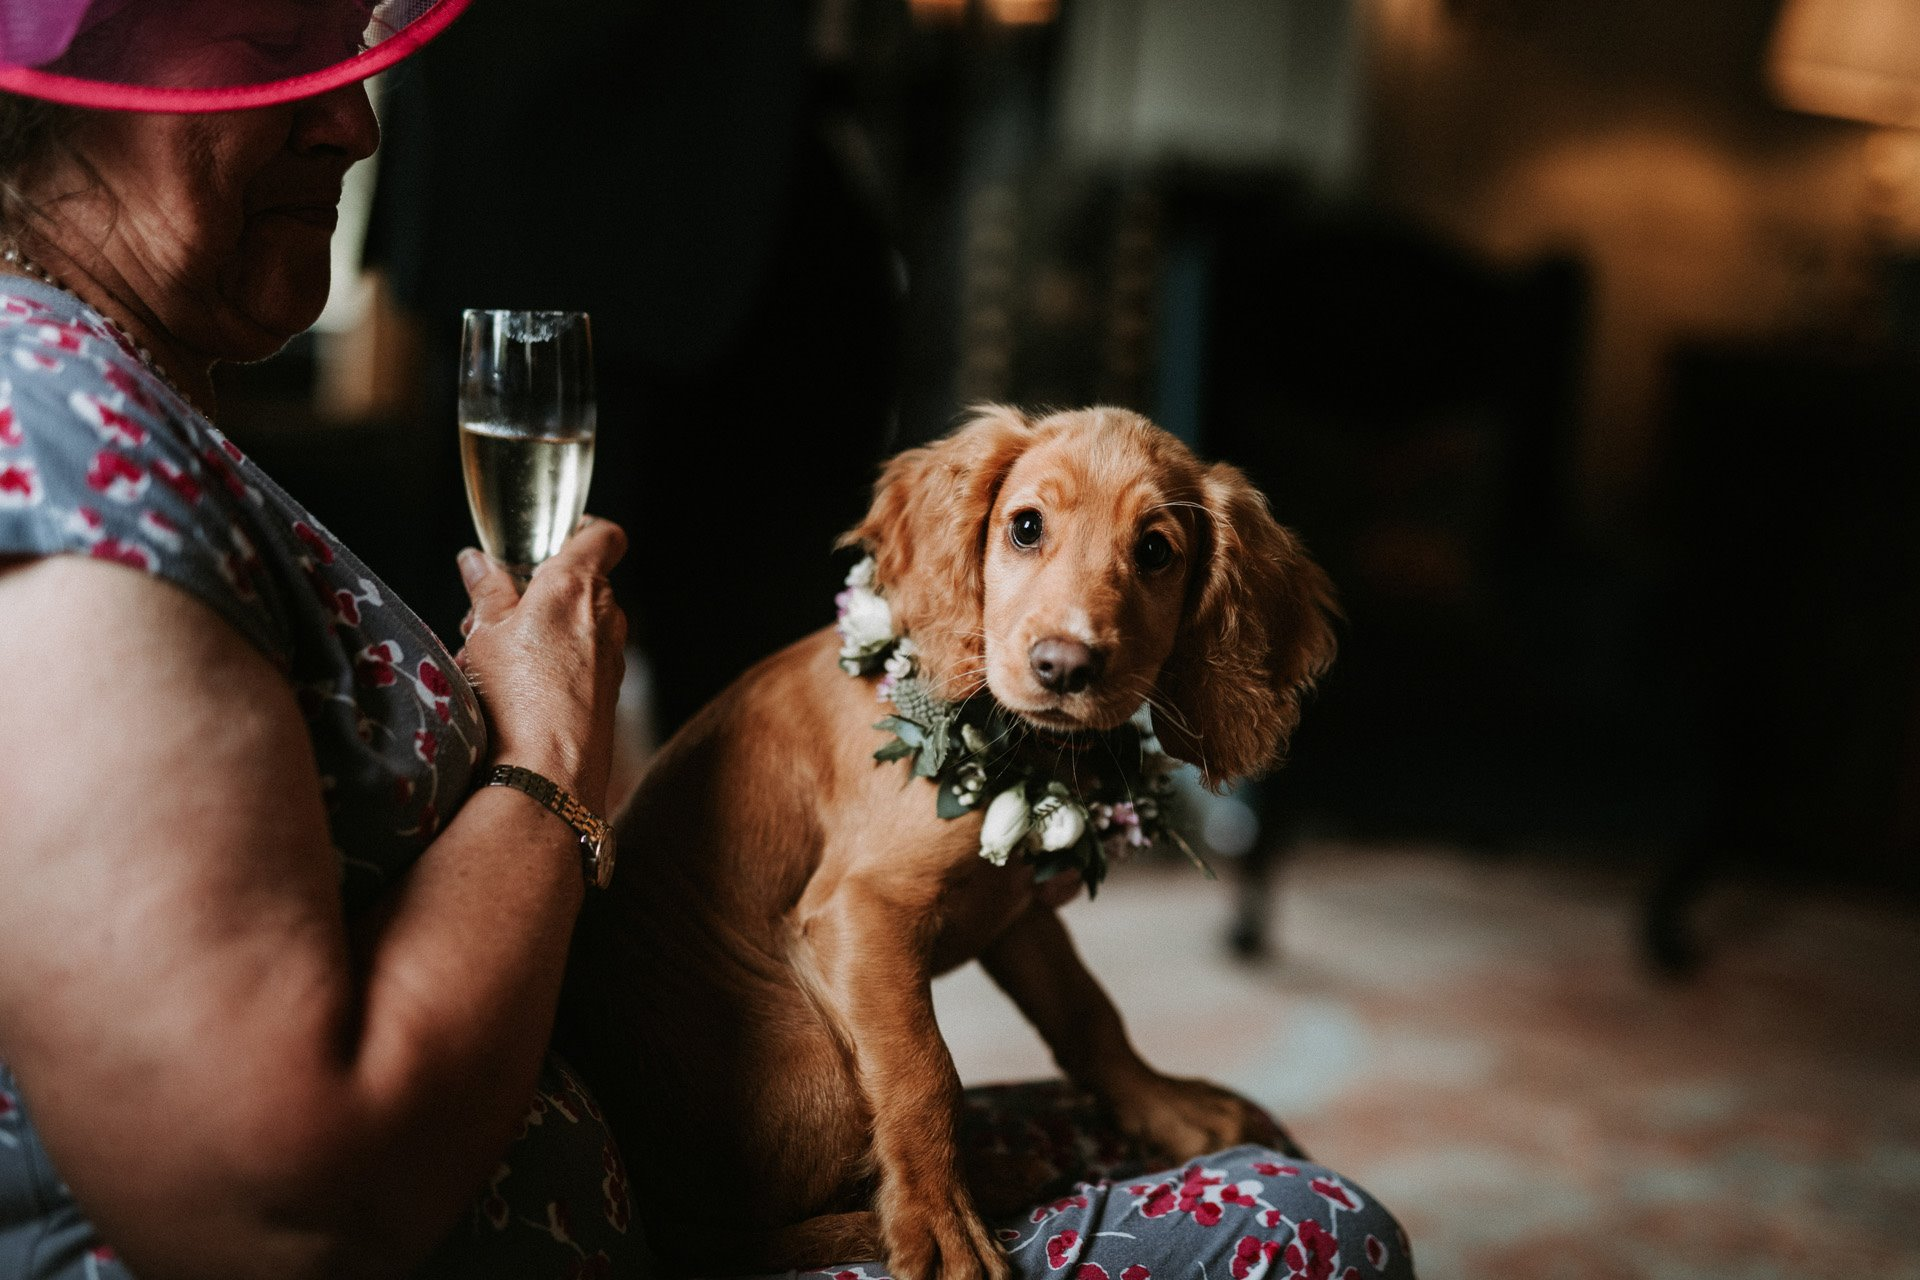 Cute Puppy bridesmaid wearing flower collar sits on a guests knee at a micro wedding at elmore court